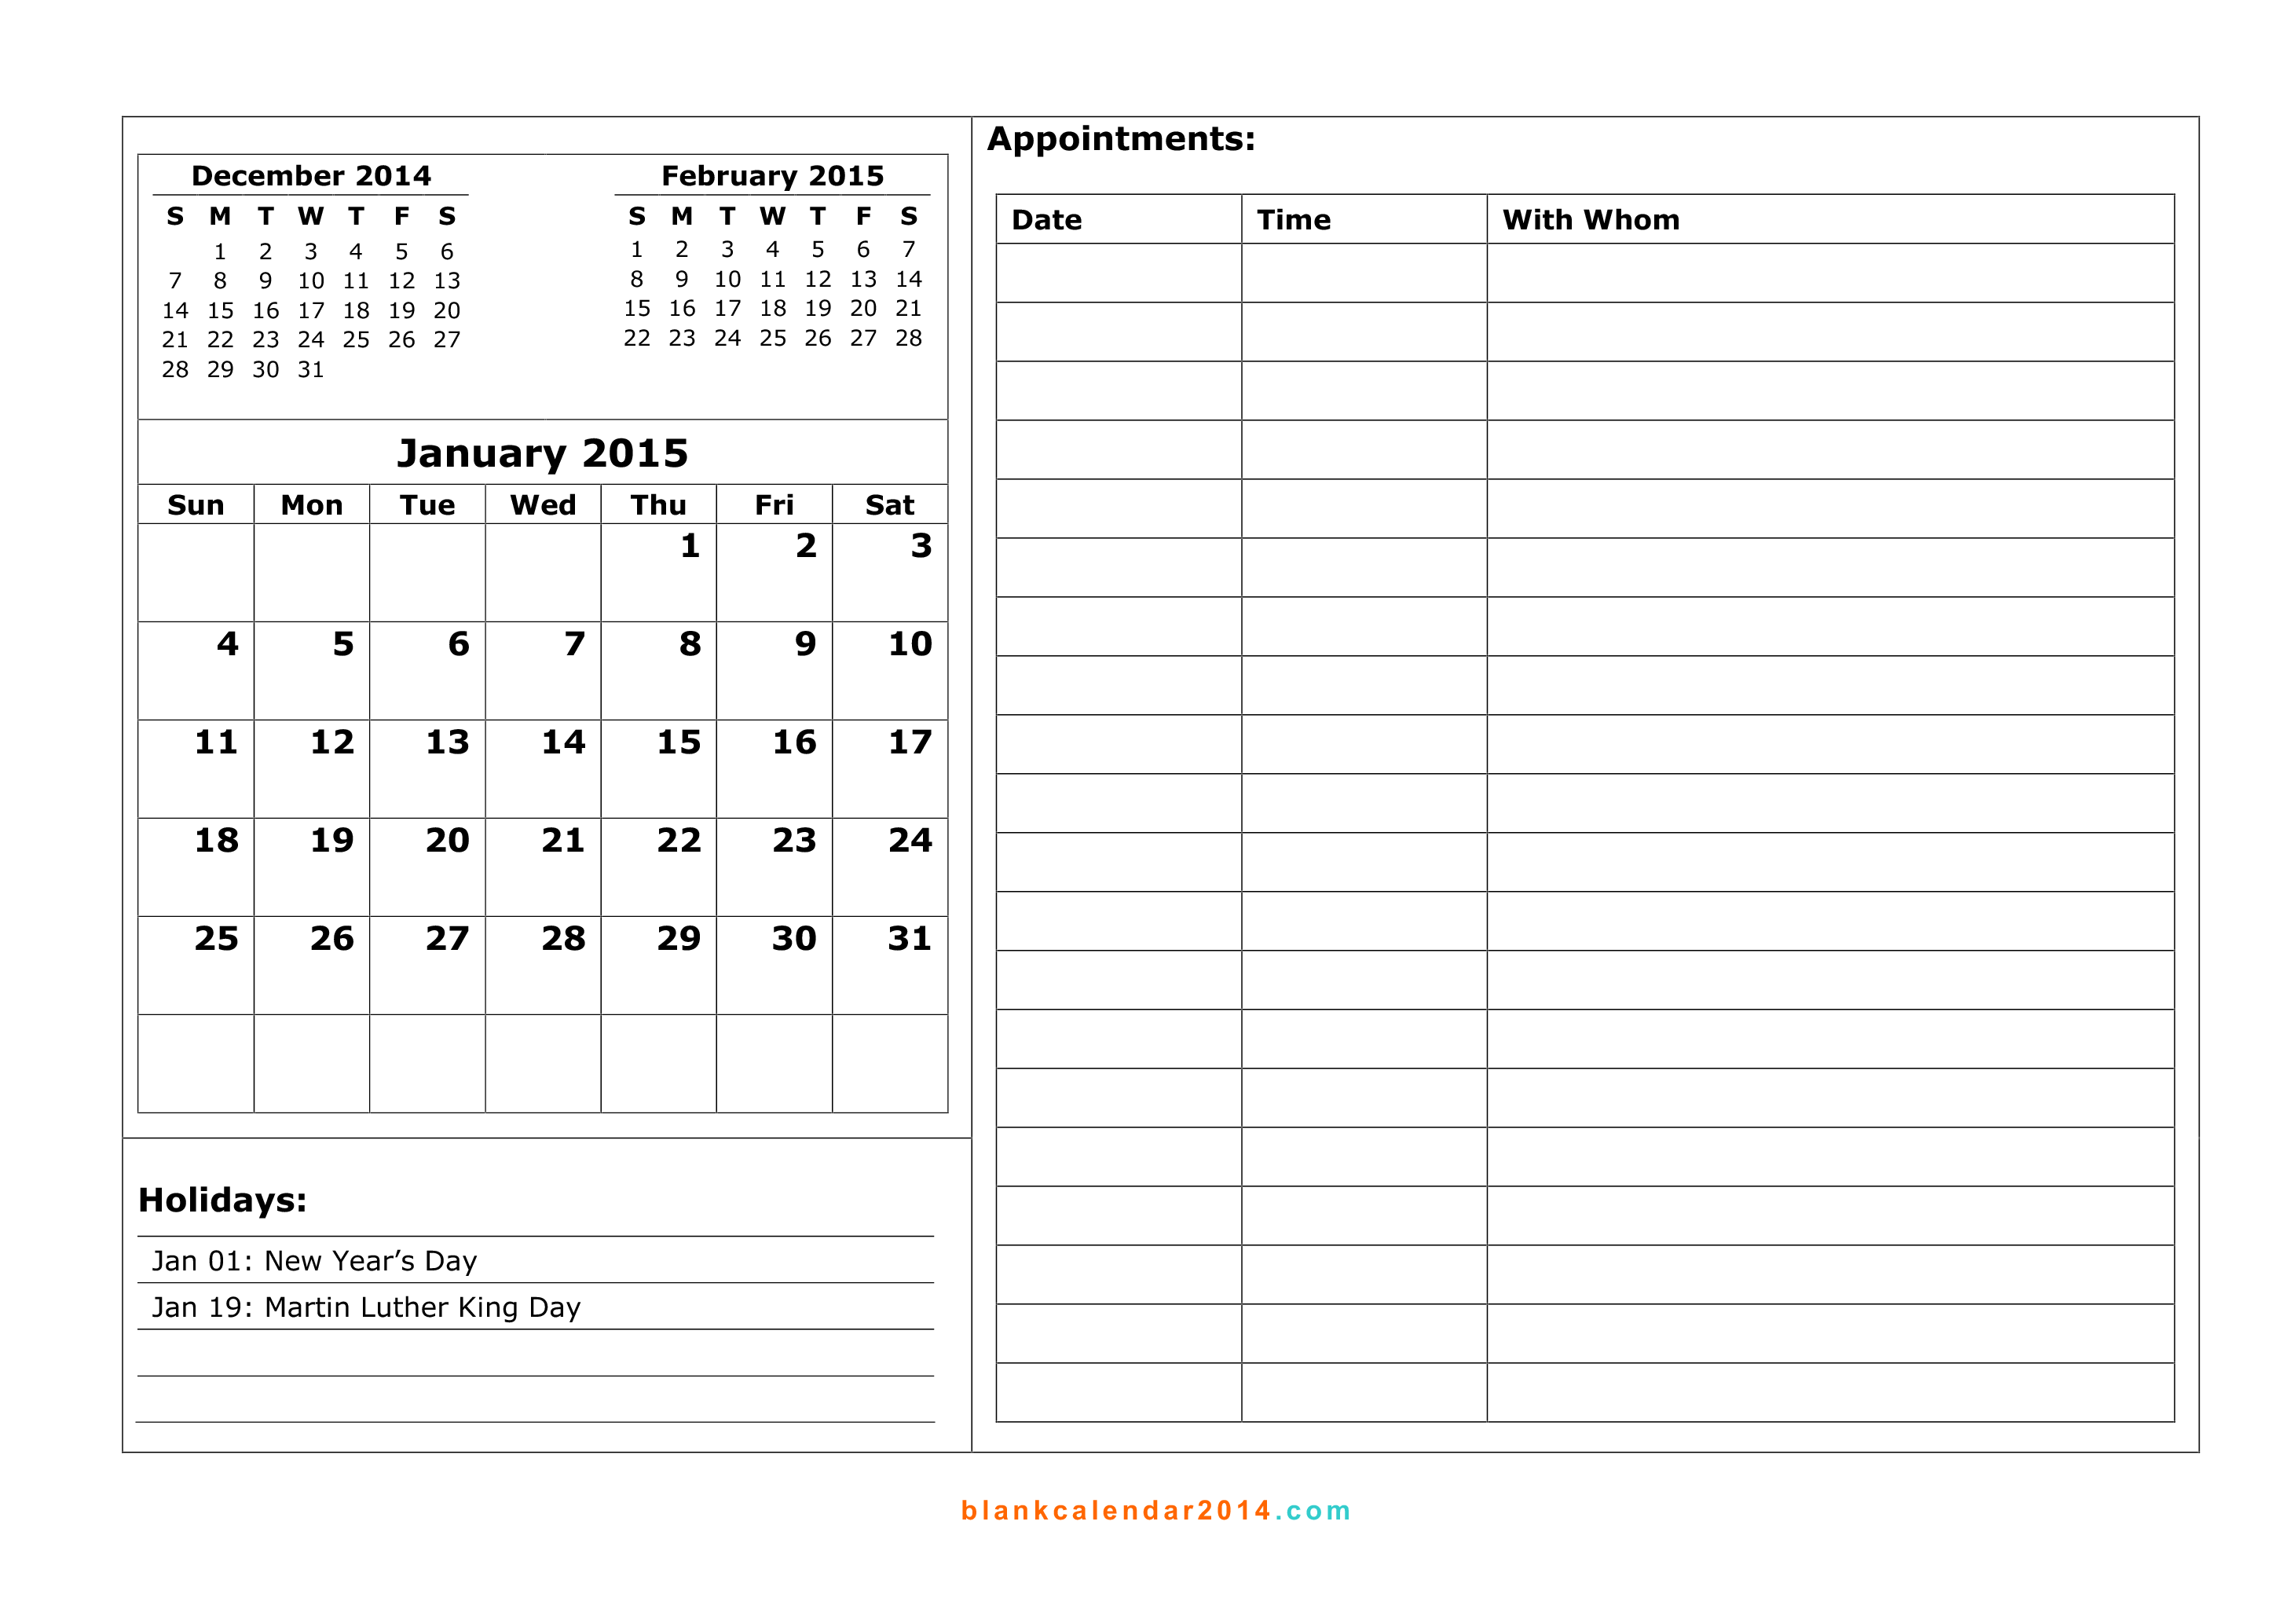 Printable appointment calendar template daily sufficient picture